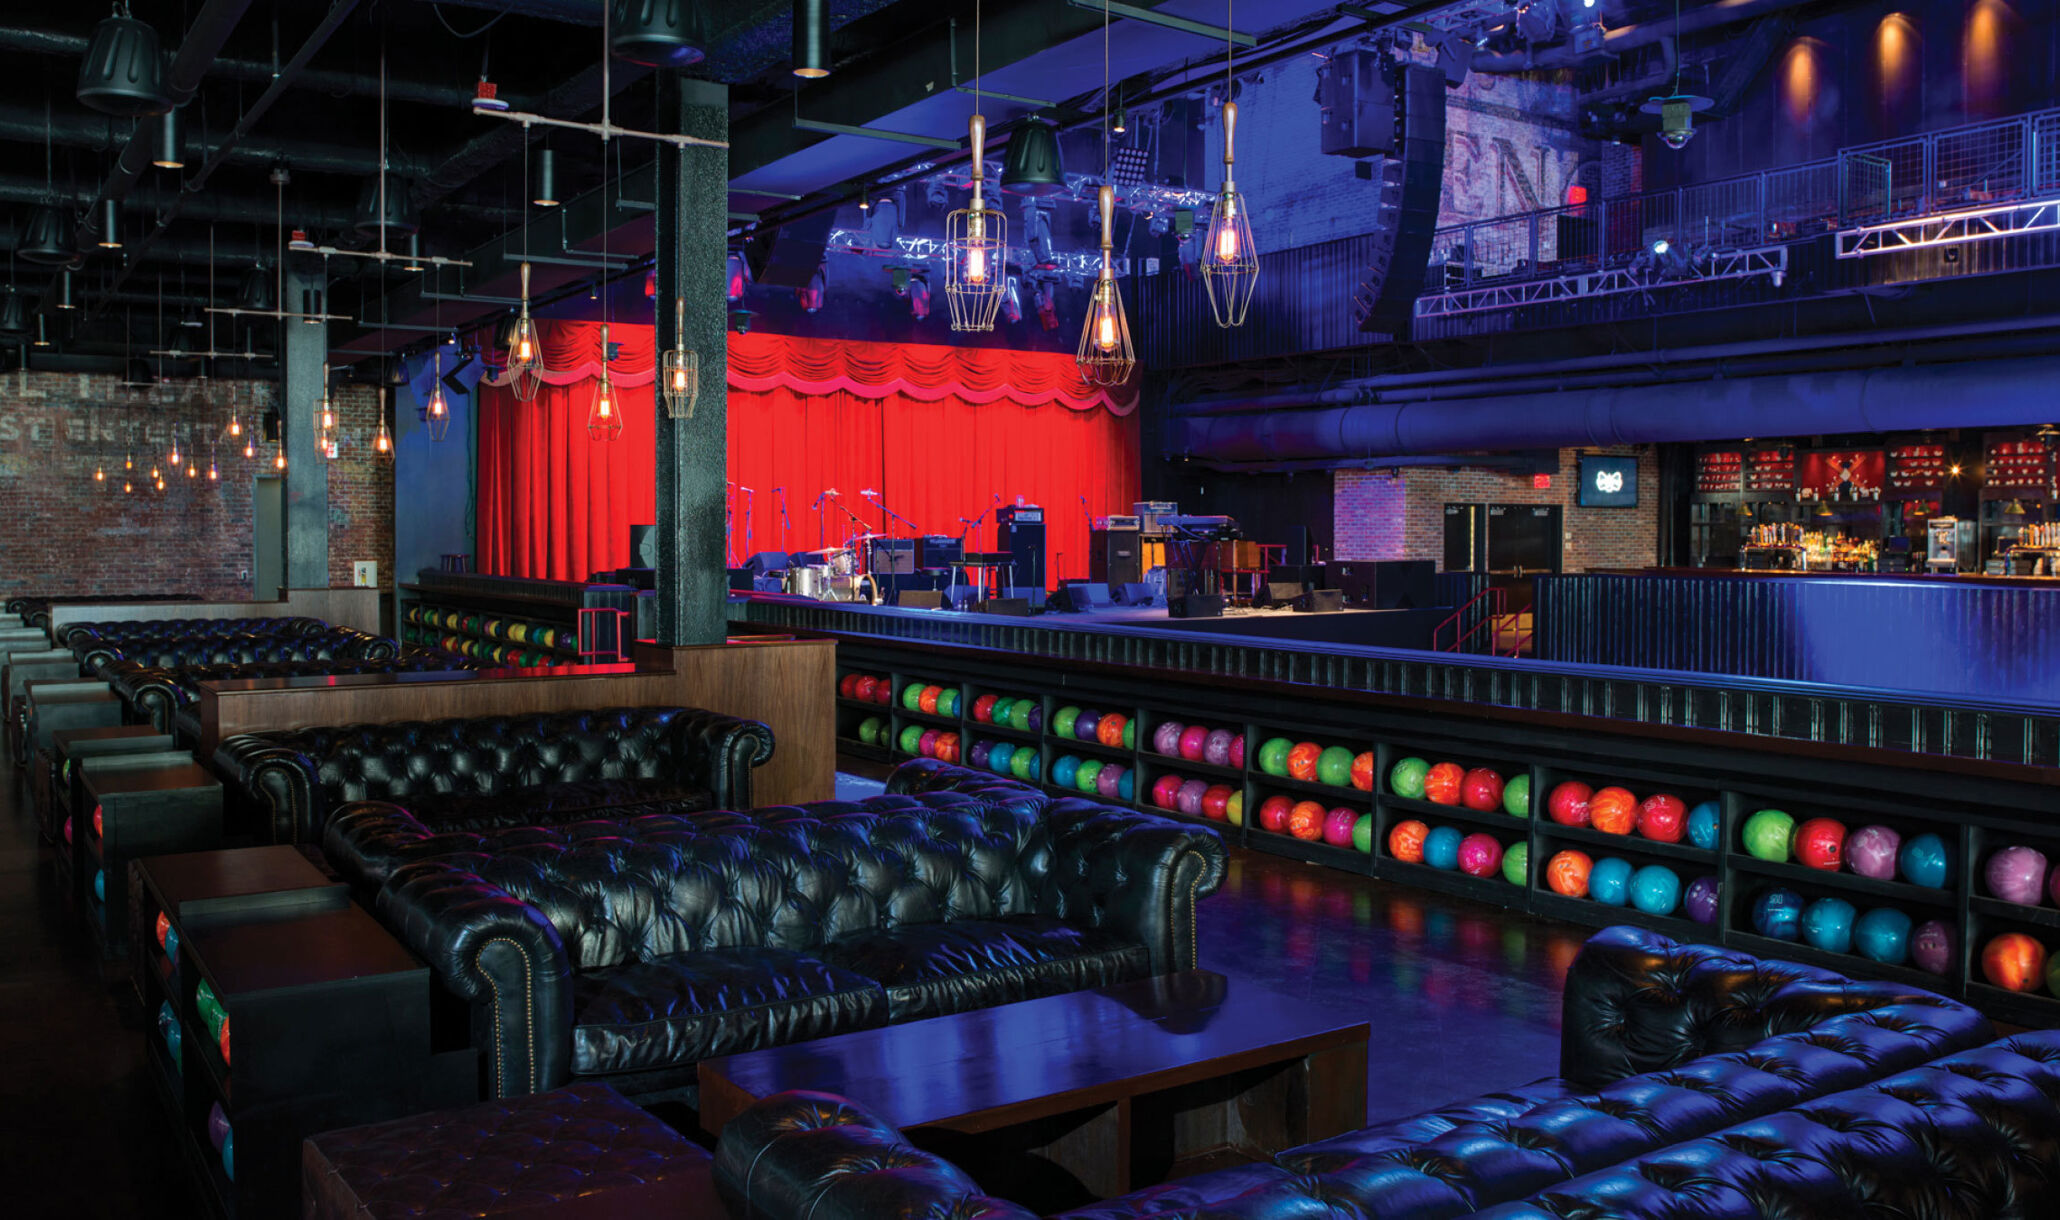 Ns Boutique Brooklyn Bowl Las Vegas Nv 16X9 07-3